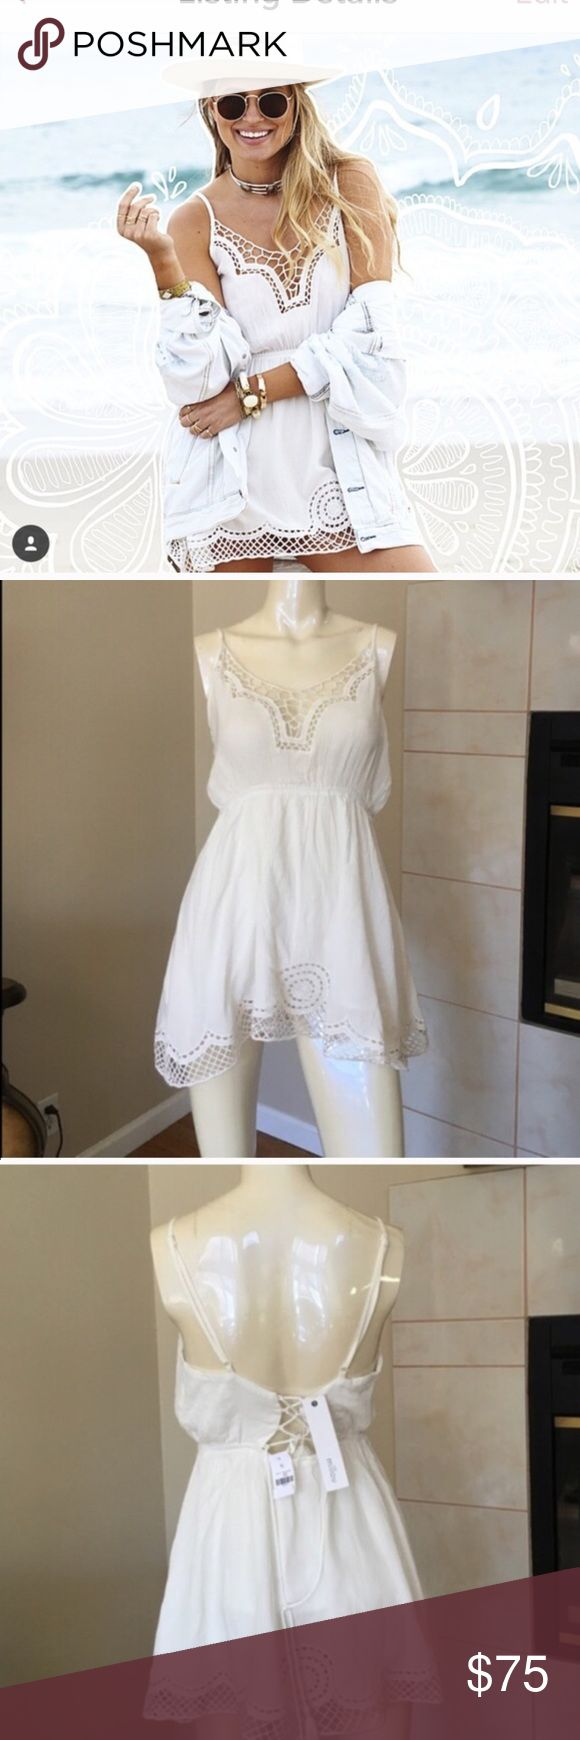 LF crochet lace lace up back dress NWT LF Dresses